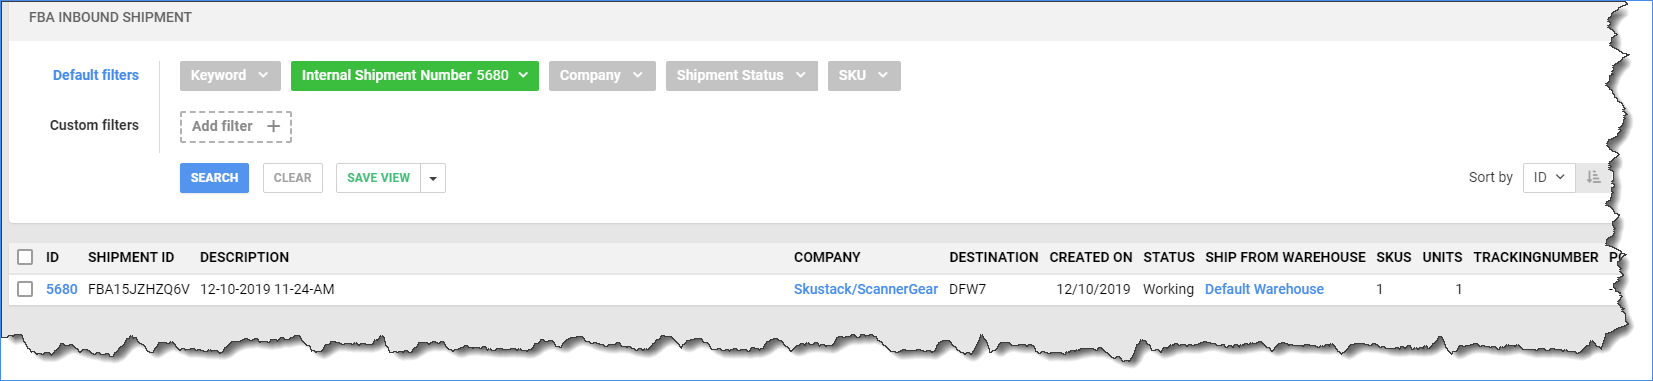 Sellercloud's Manage FBA Inbound Shipment page showing an imported FBA inbound shipment